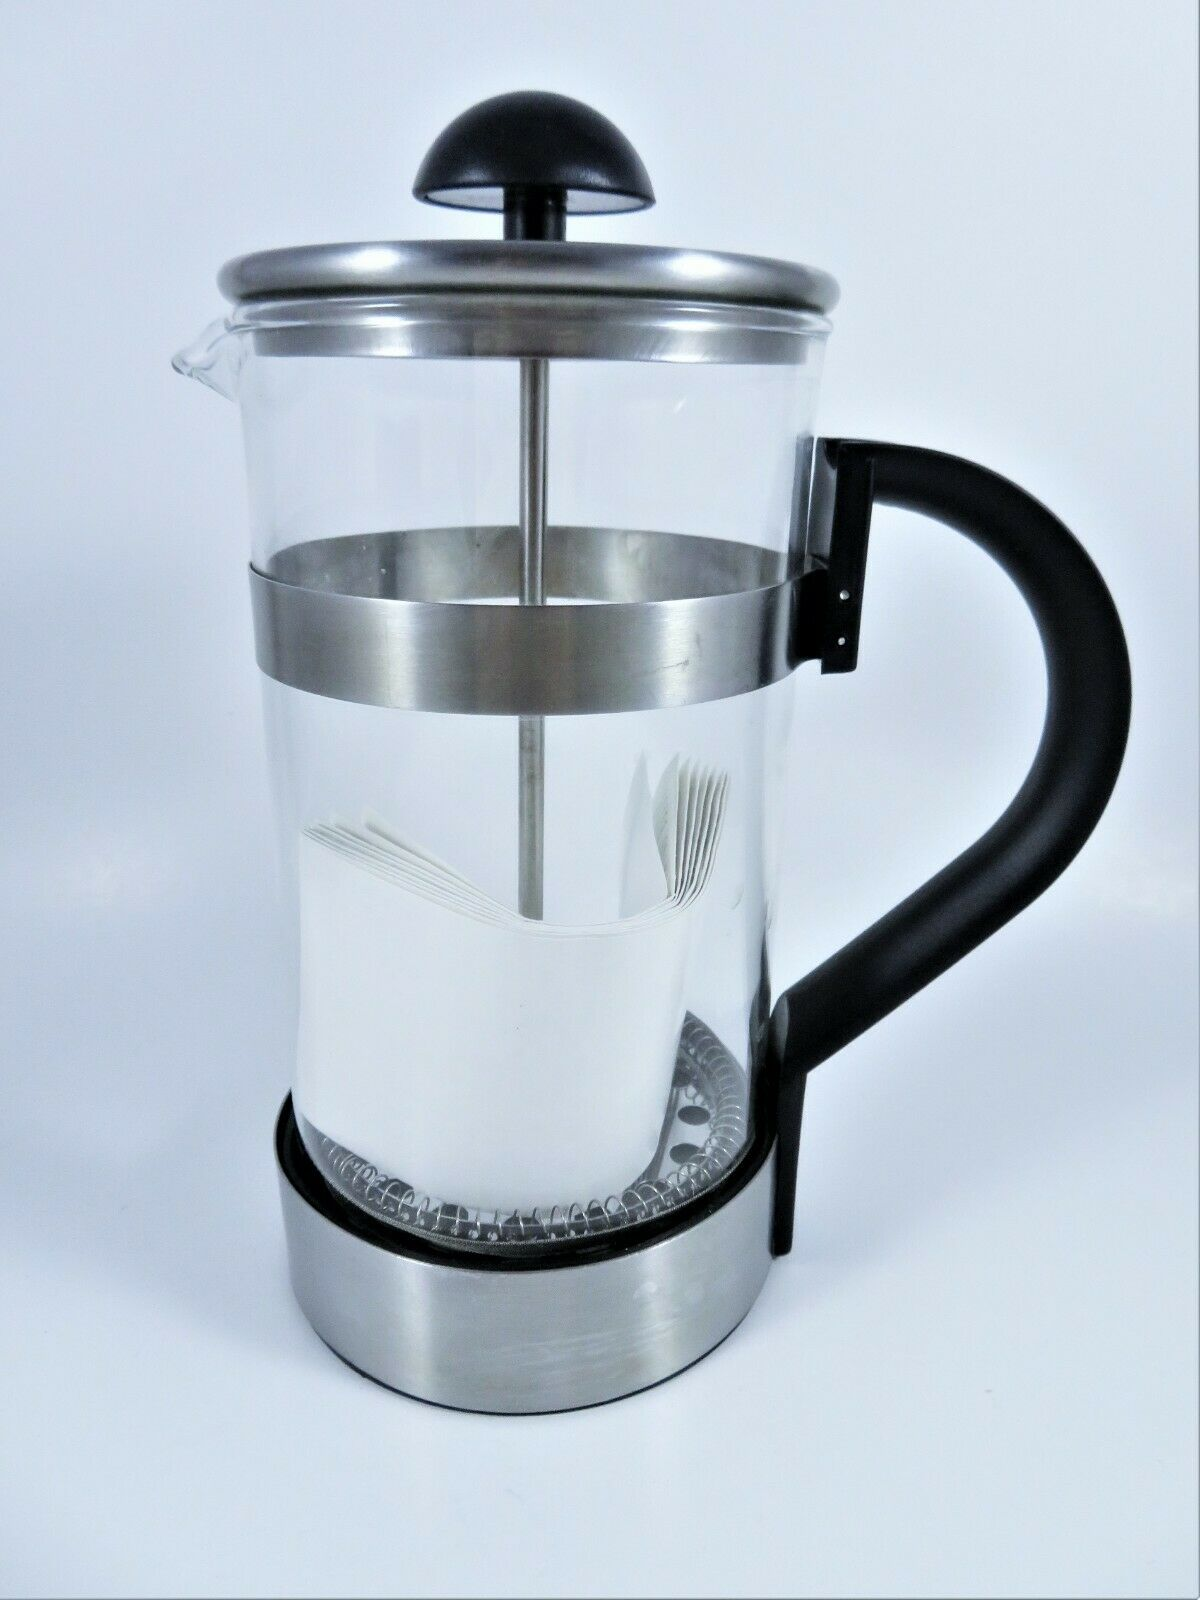 French Press Coffee Maker 8 Cup 34 Oz